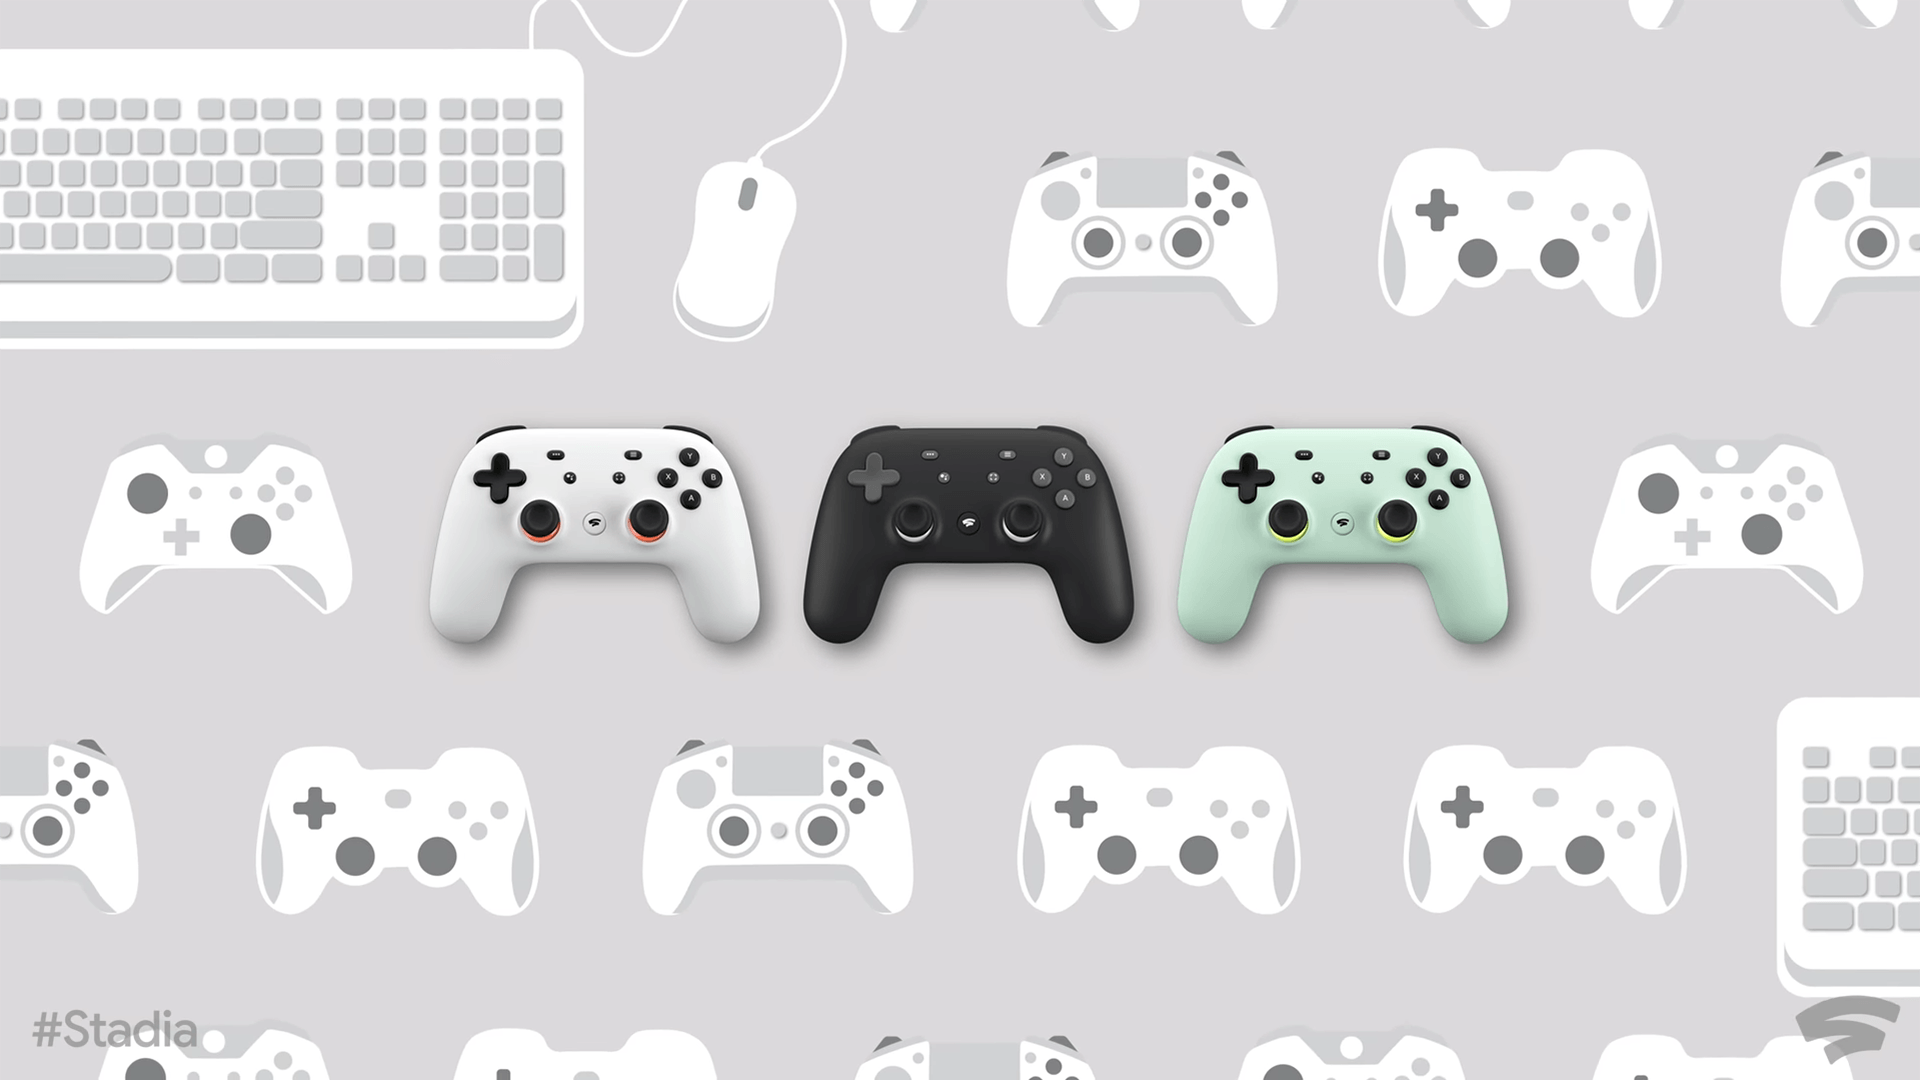 stadia-controllers-graphic